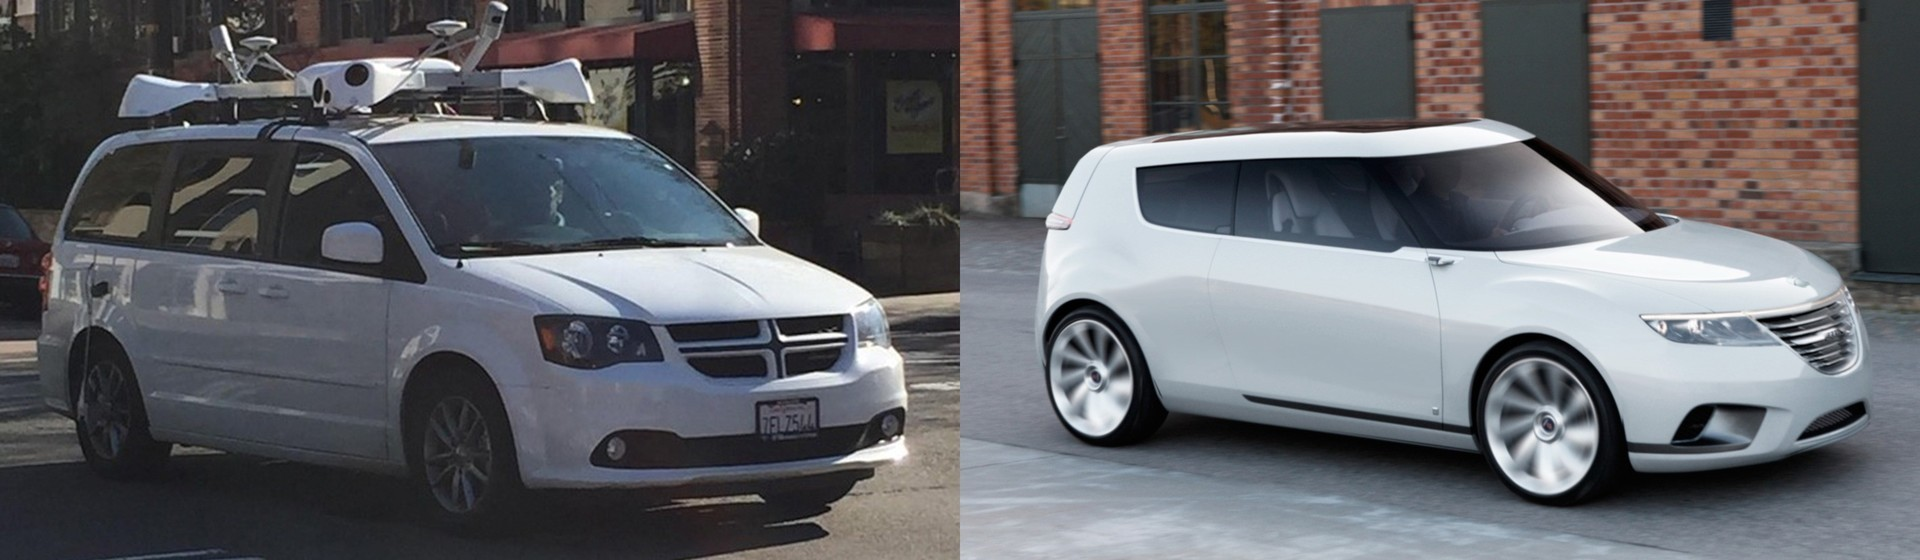 From apple prototype to Saab by Apple car.